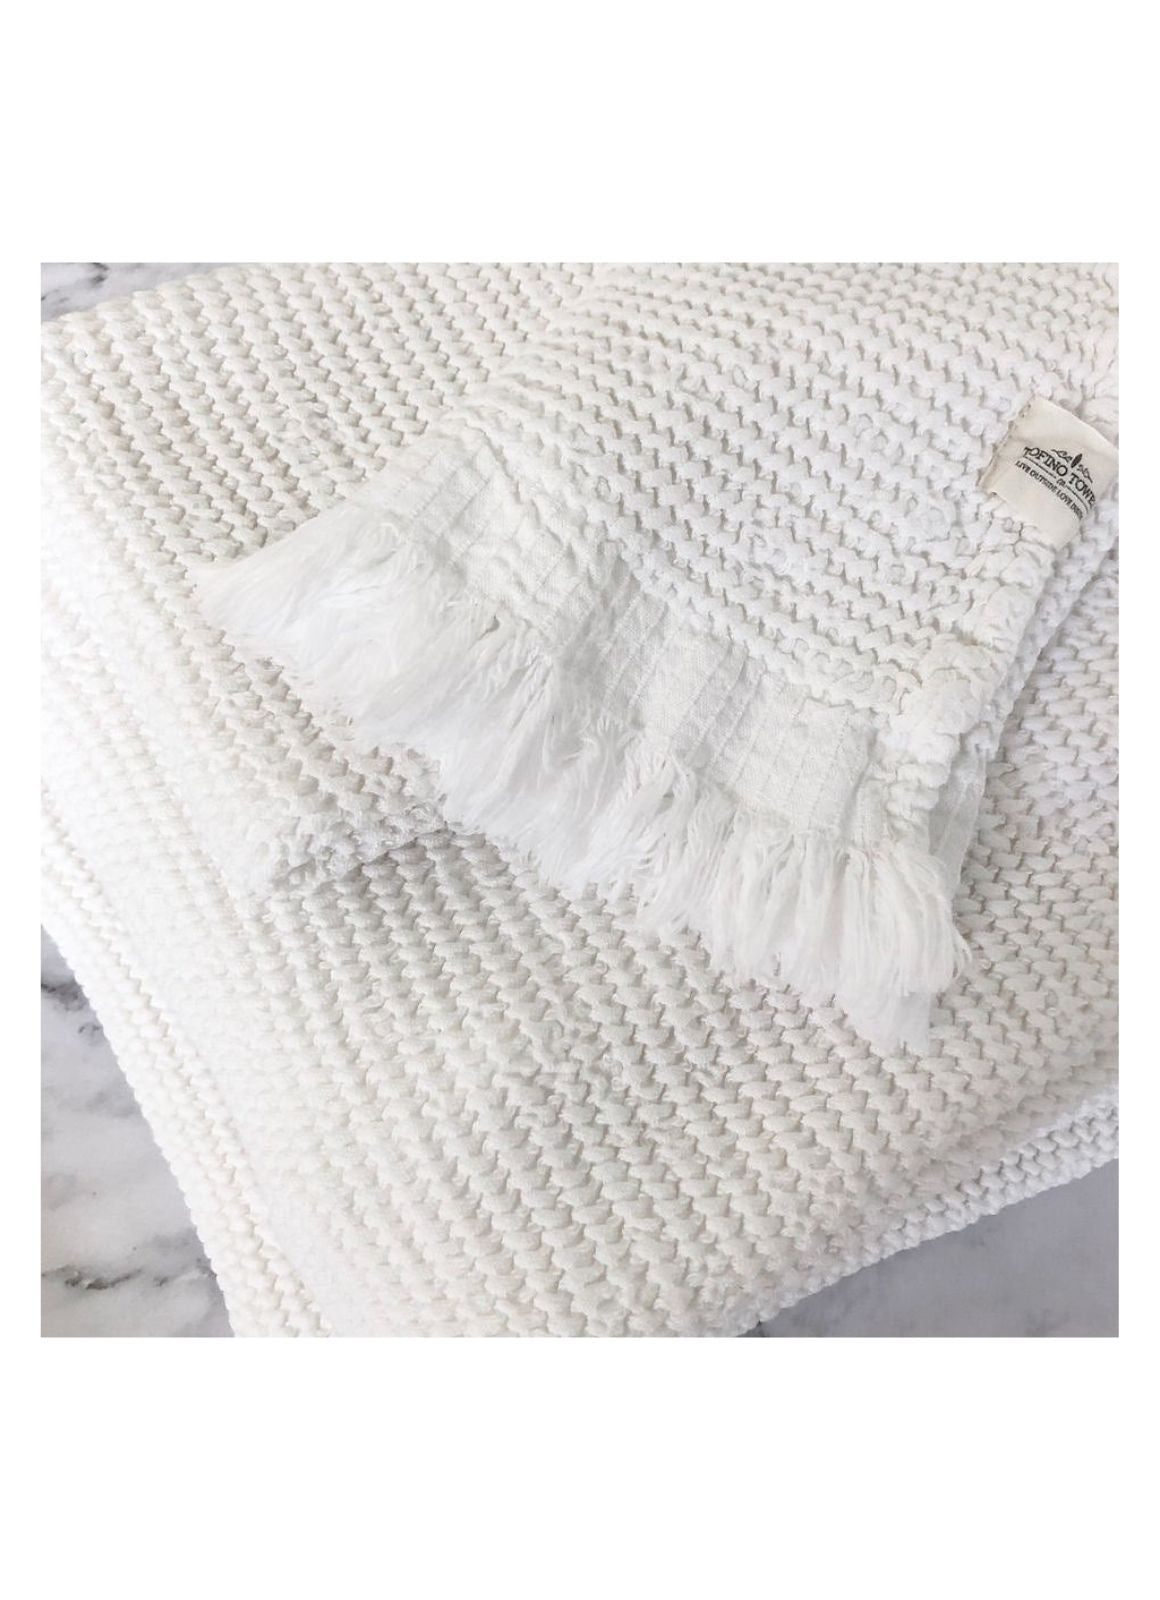 Tofino Towel Co Sombrio Towel Set